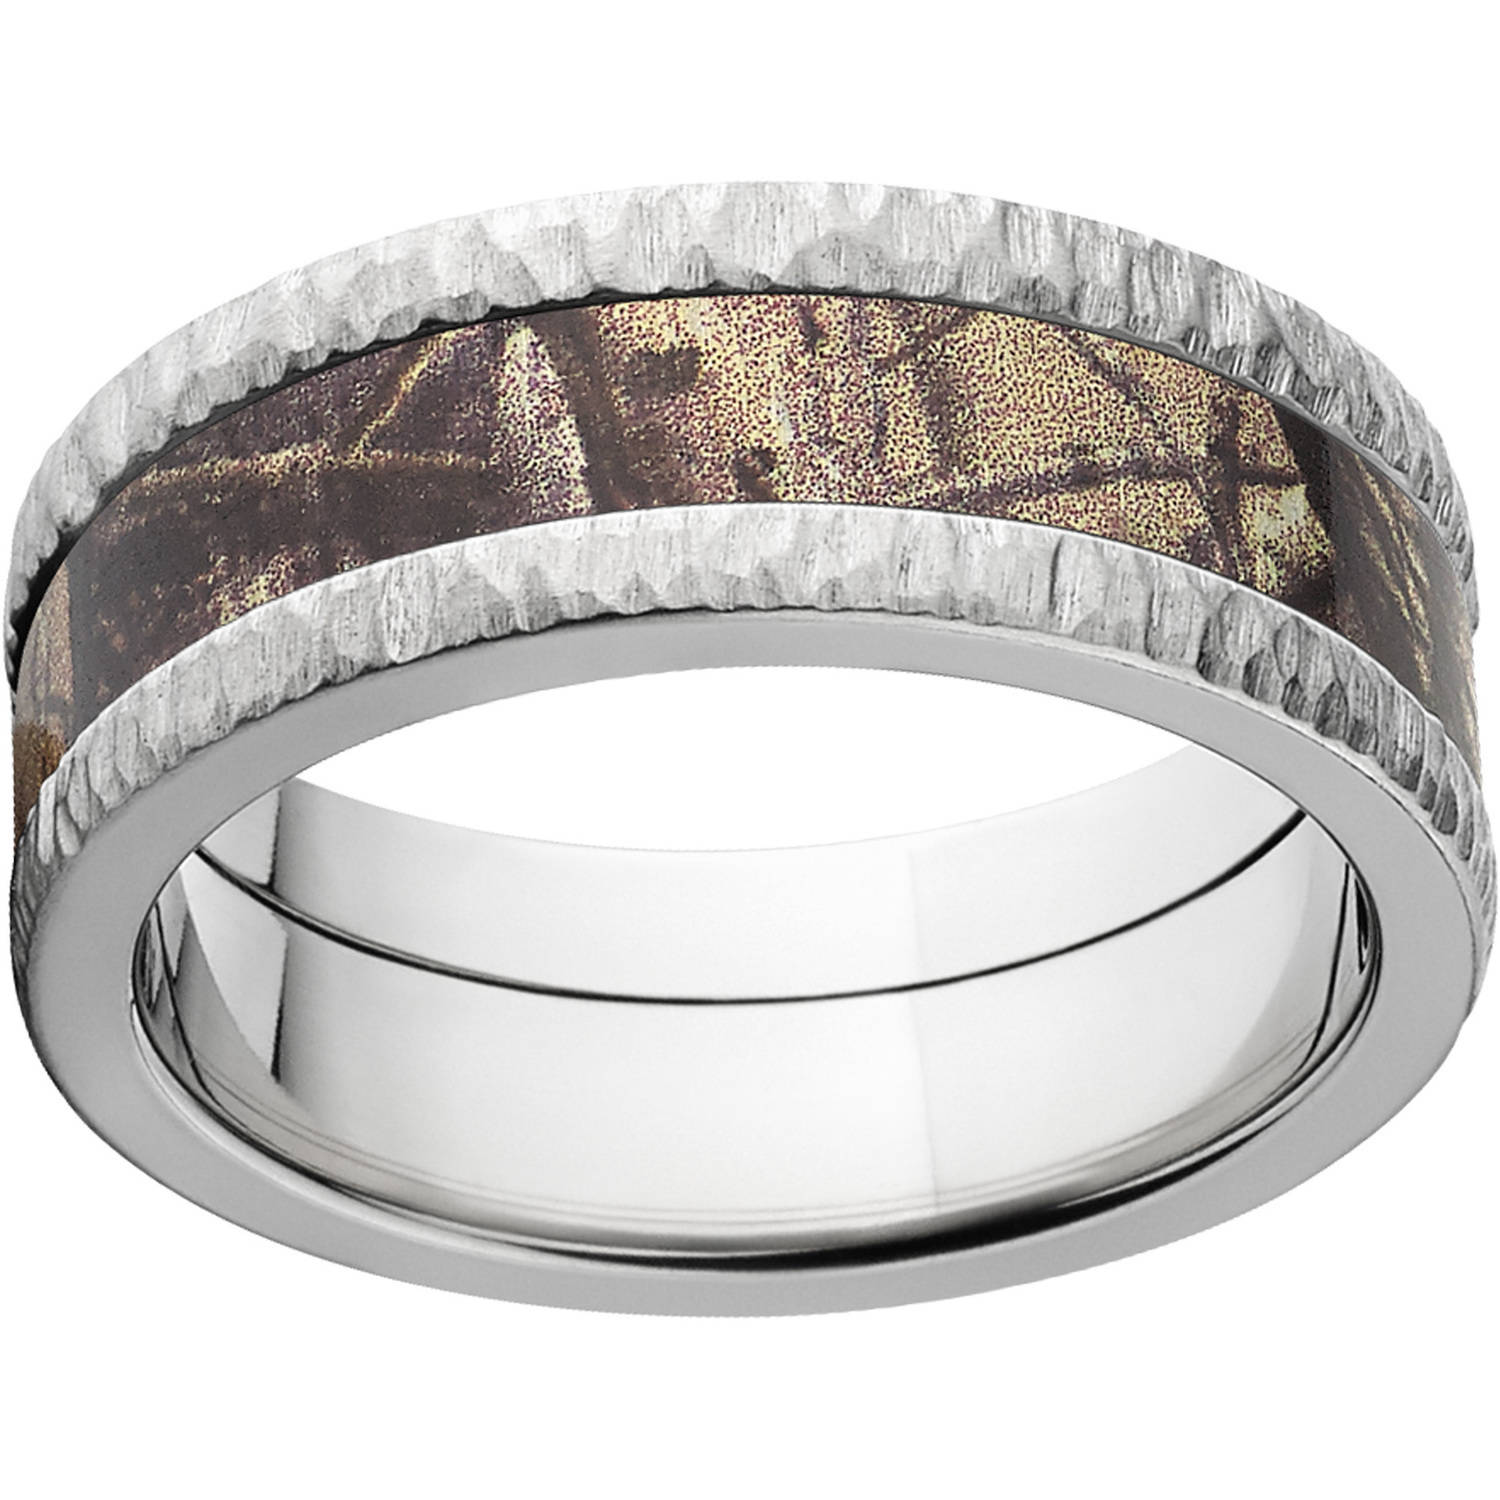 Realtree AP Men's Camo 8mm Stainless Steel Wedding Band with Tree Bark Edges and Deluxe Comfort Fit